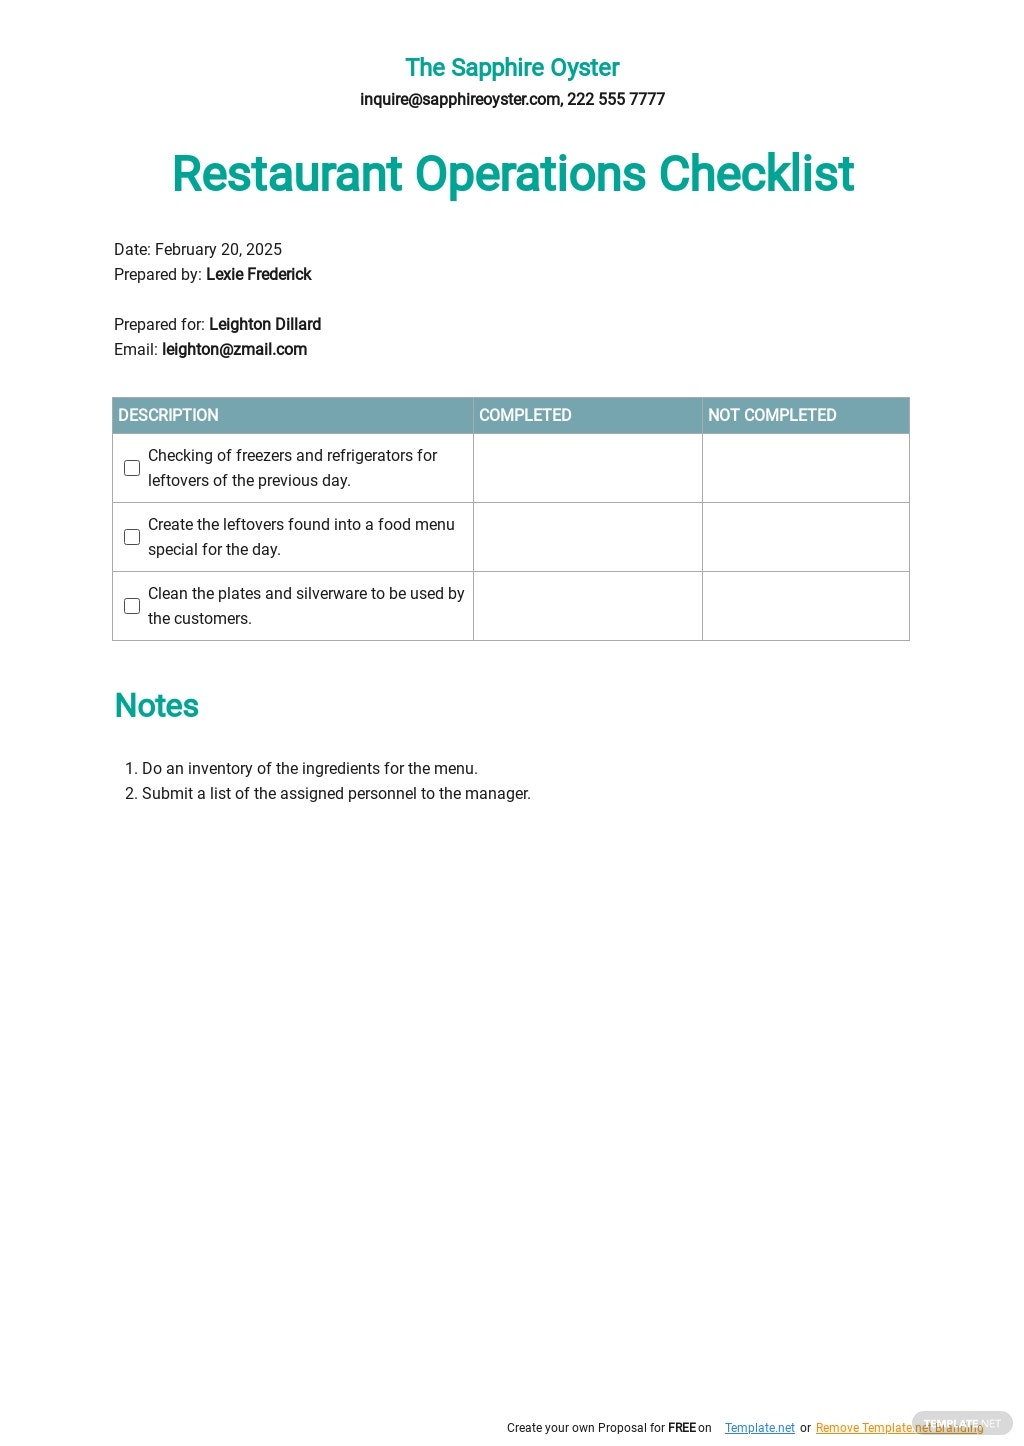 Restaurant Operations Checklist Template  - Google Docs, Word, Apple Pages